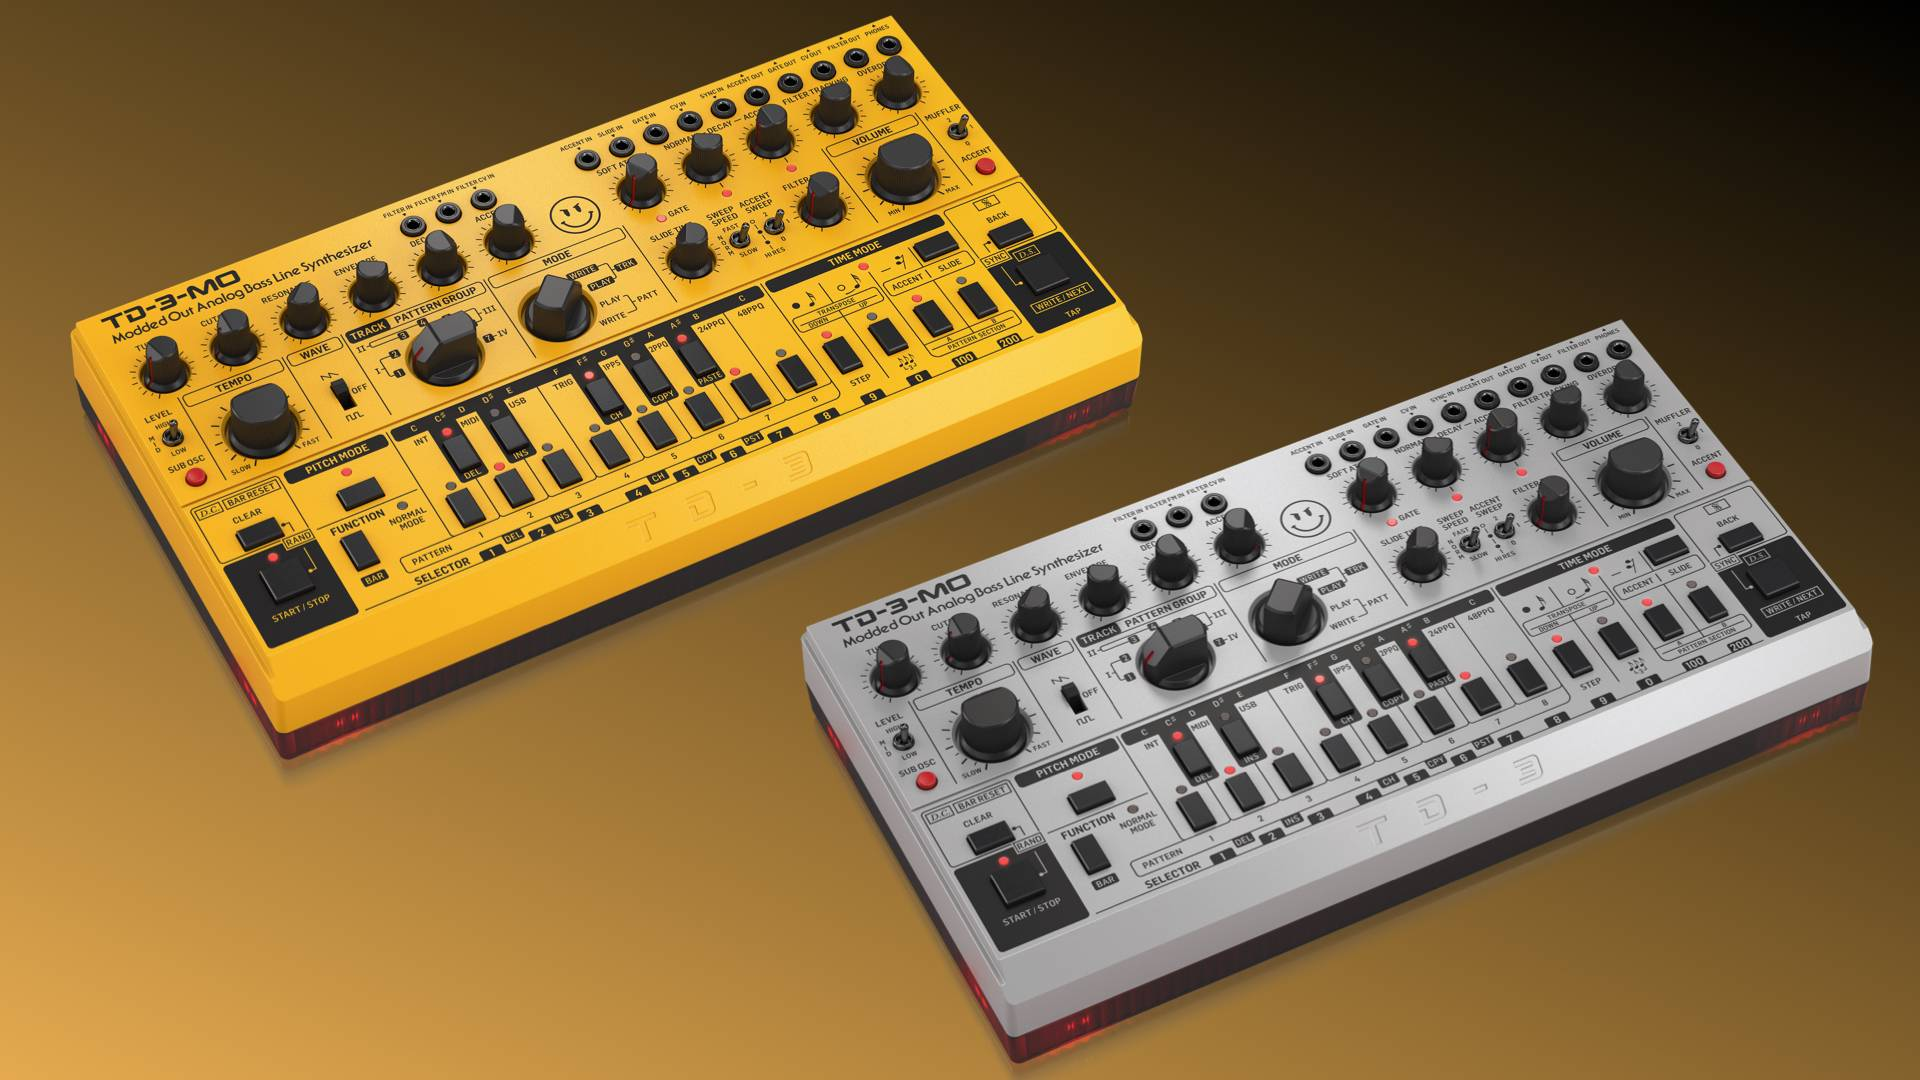 Behringer presents a new modified version of their TD-3